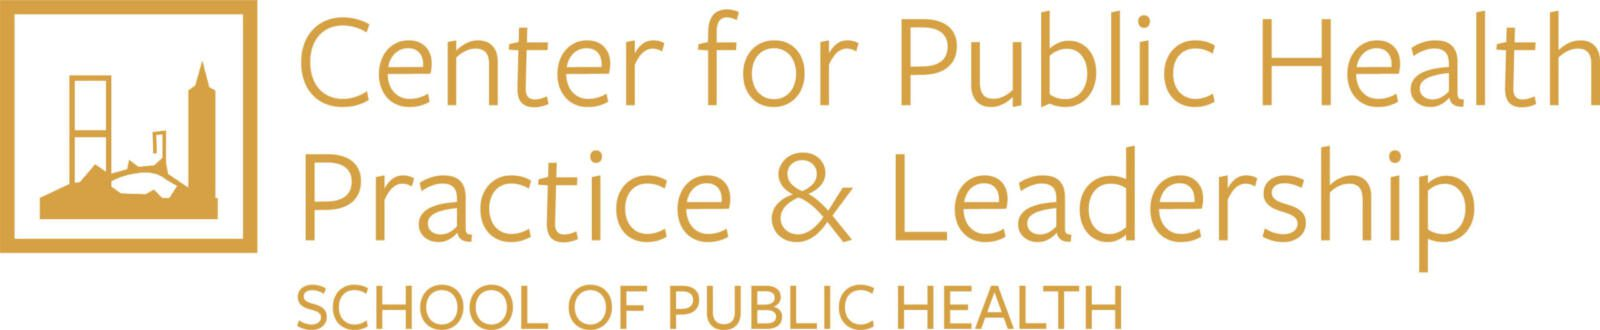 Center for Public Health Practice and Leadership - School of Public Health